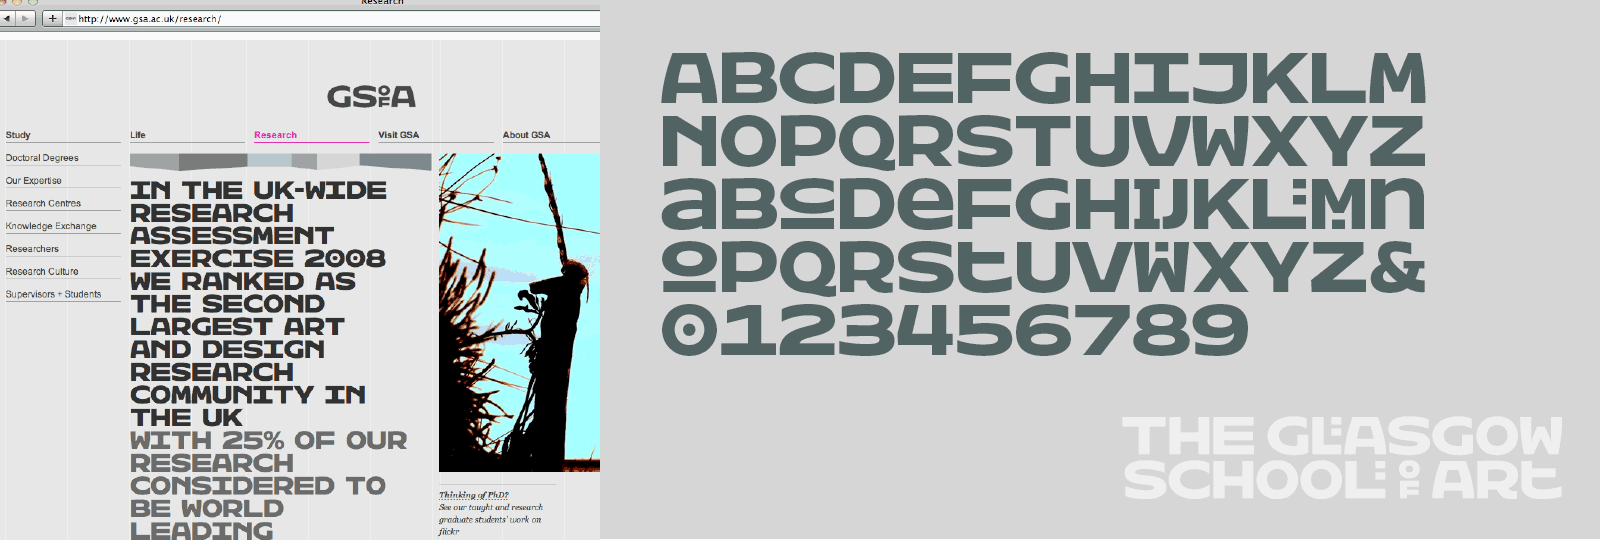 I_love_Typography_05-03-22-update